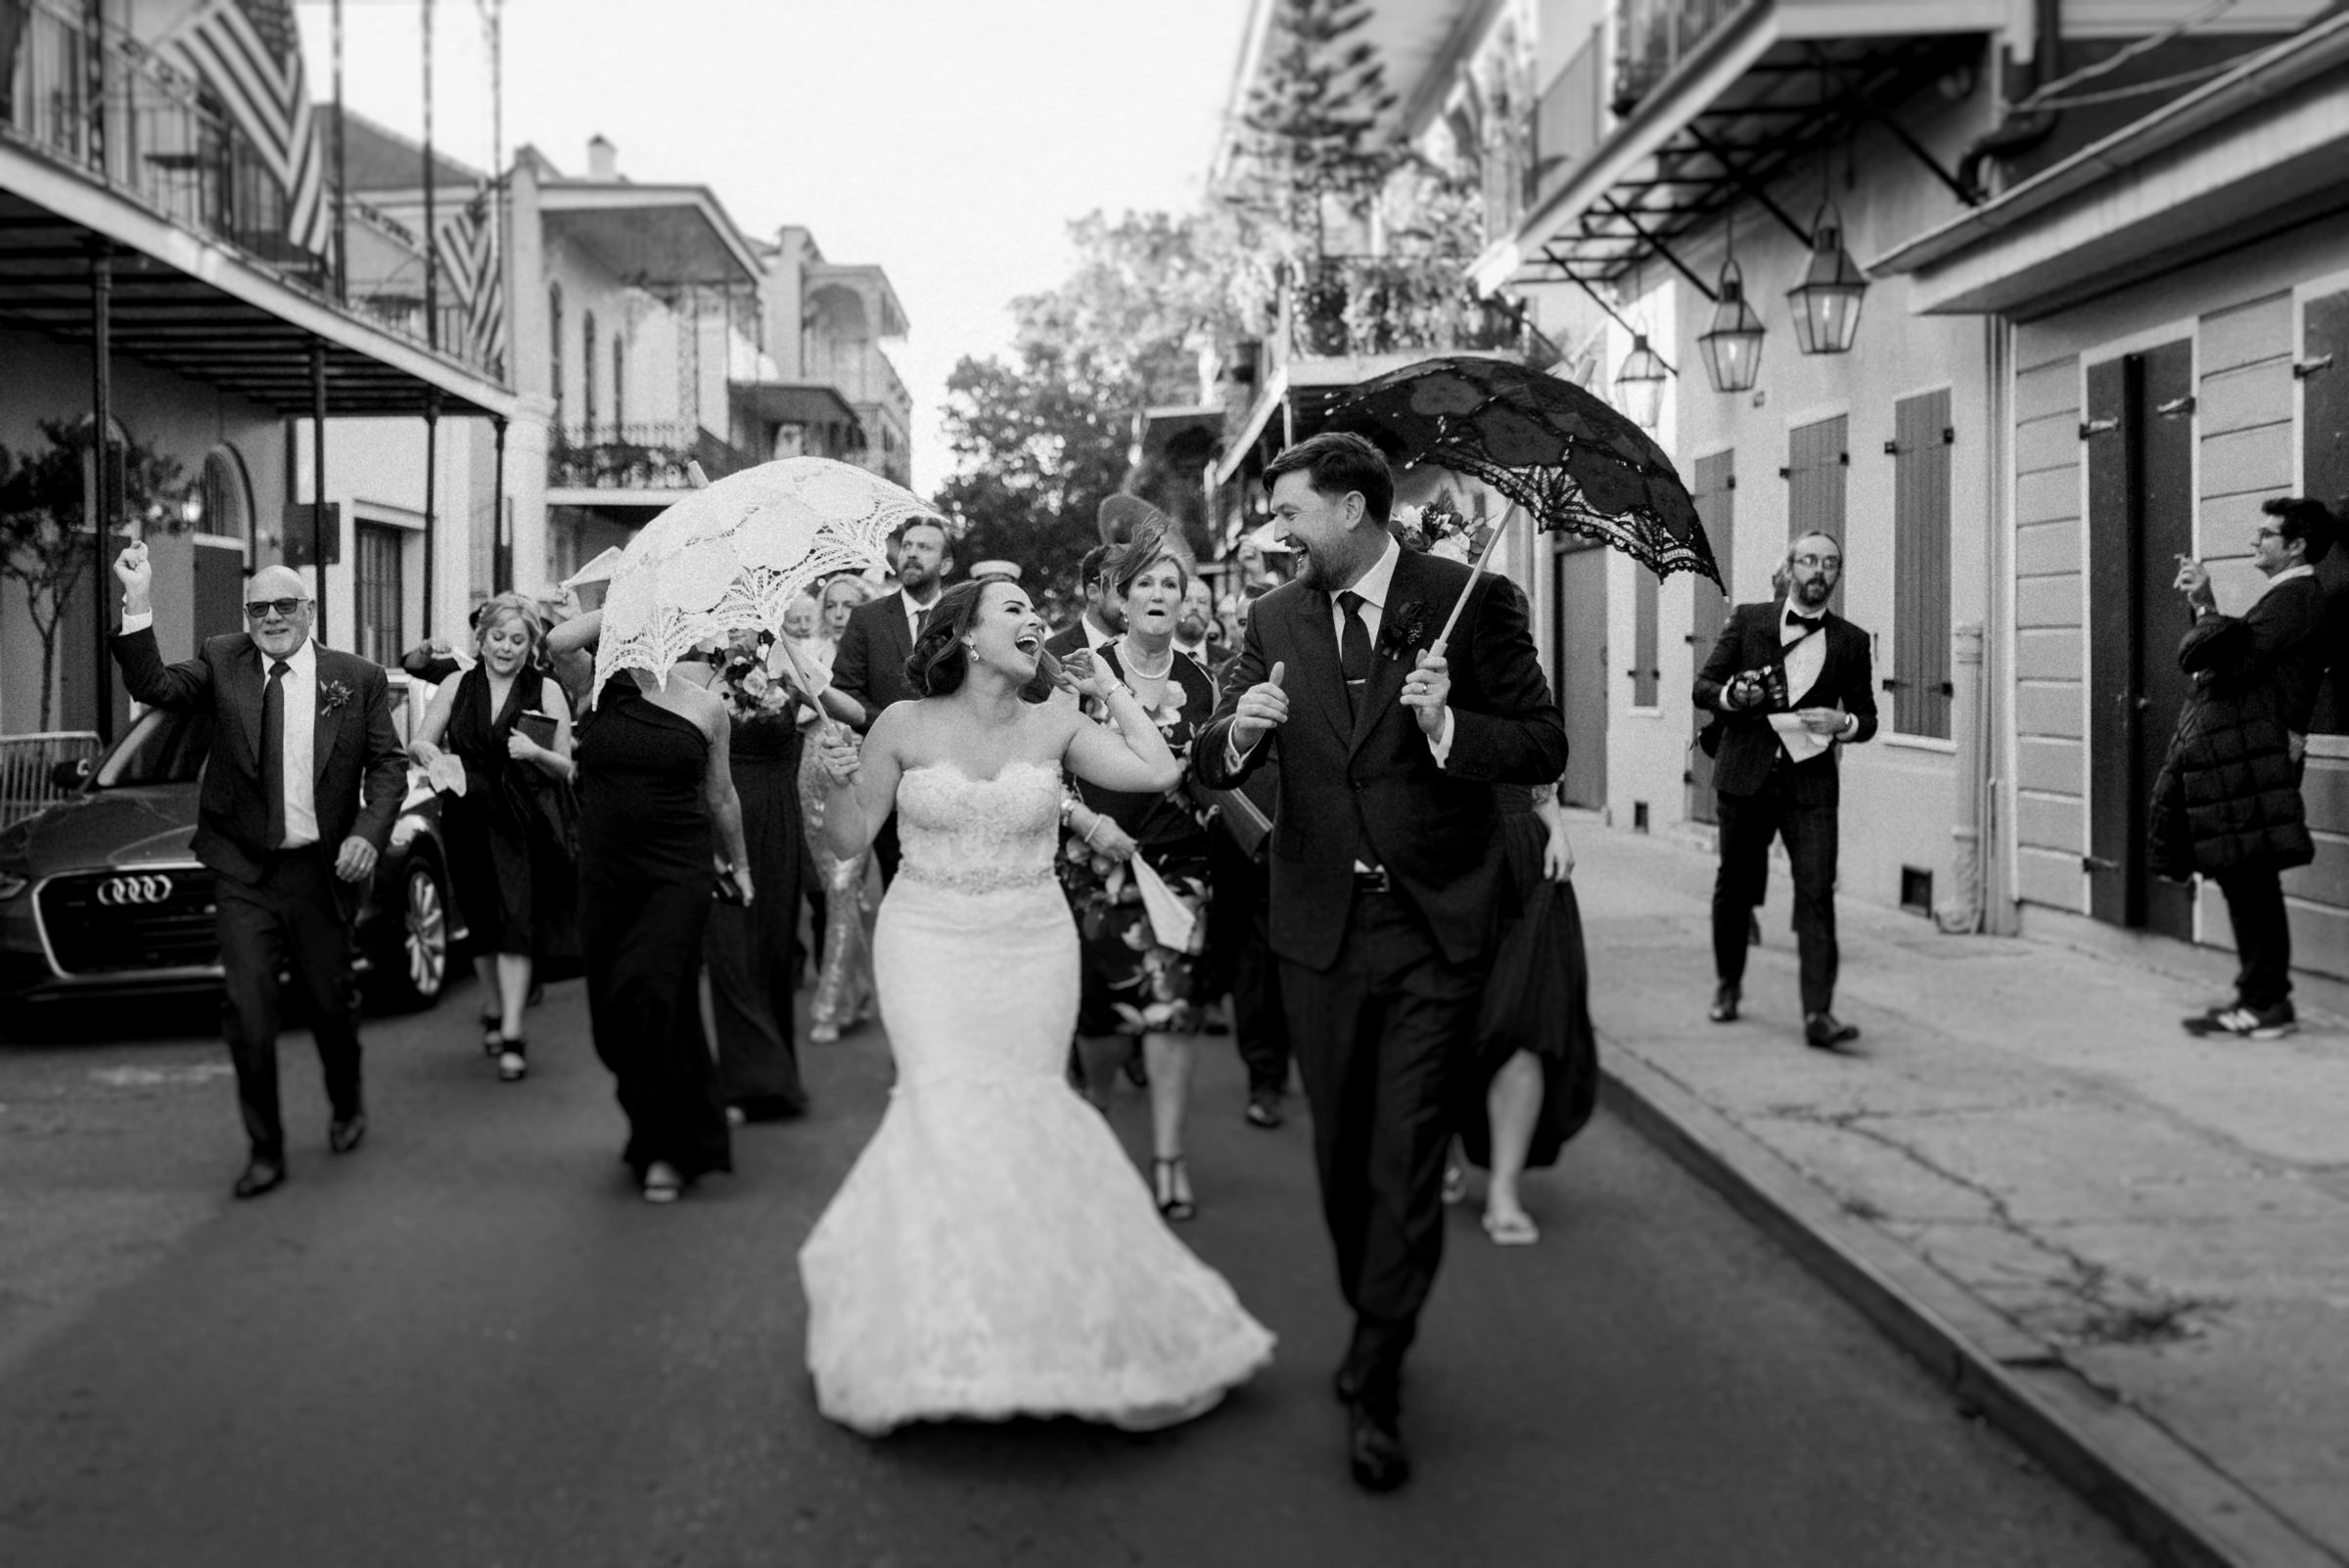 couple happily walking down the new orleans street in wedding parade- photo by Dark Roux